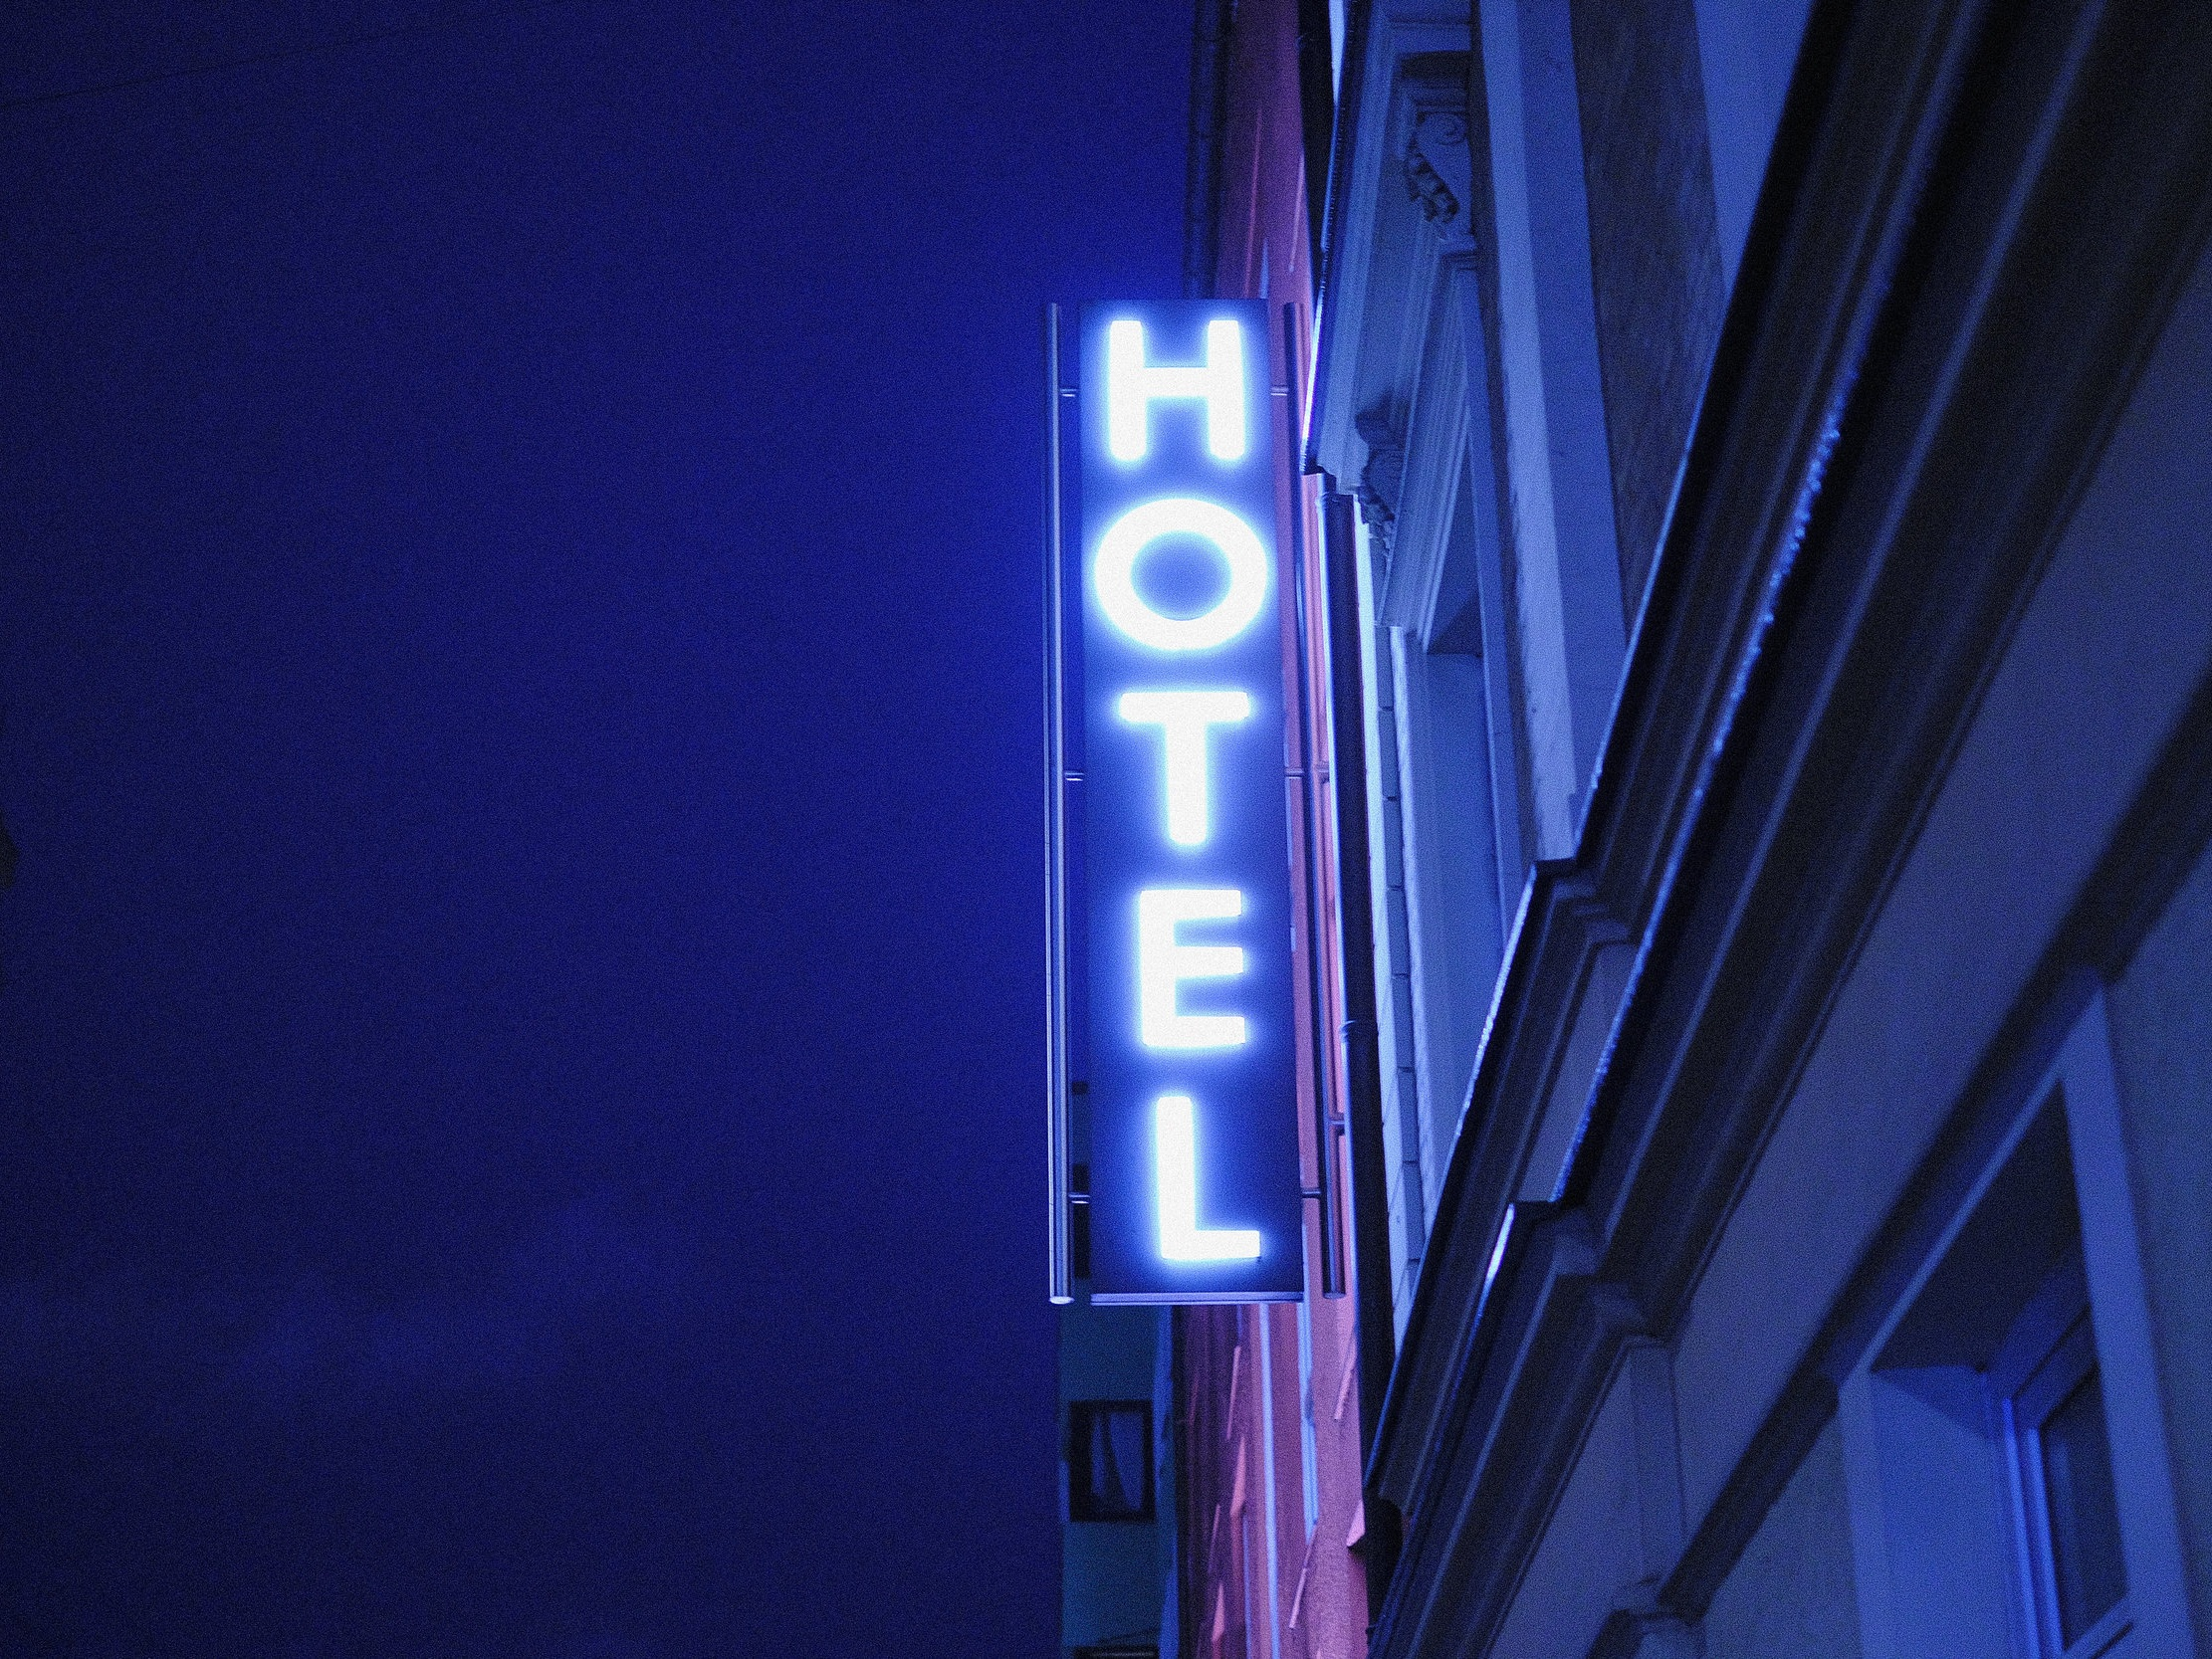 - The supply side - tourist lodging/hotel operators, tourism & travel players